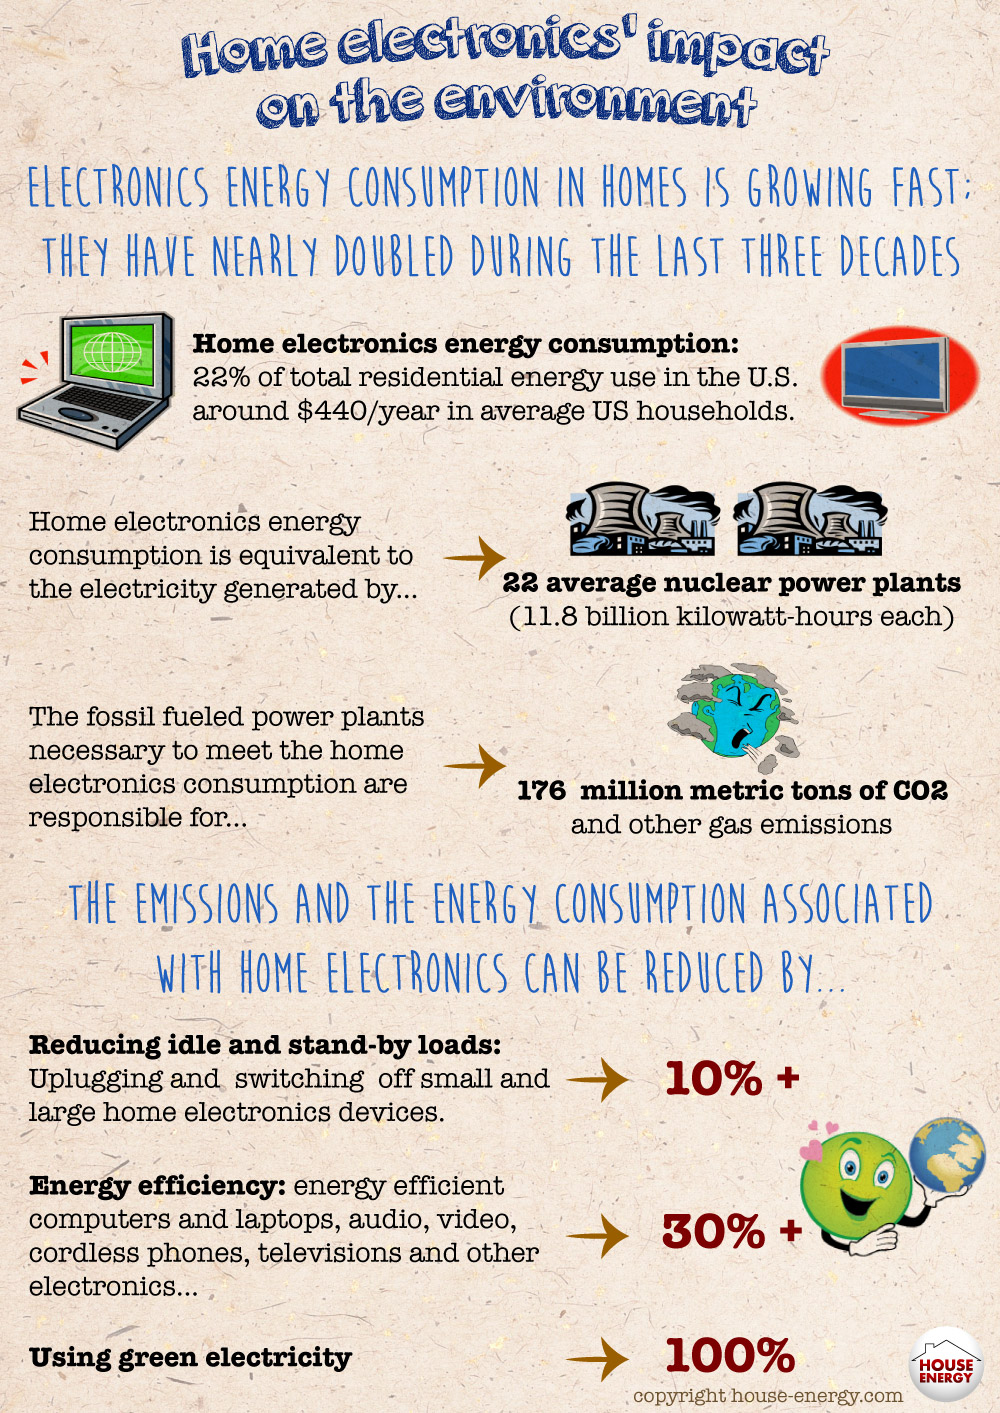 Home eletronics impact on the environment